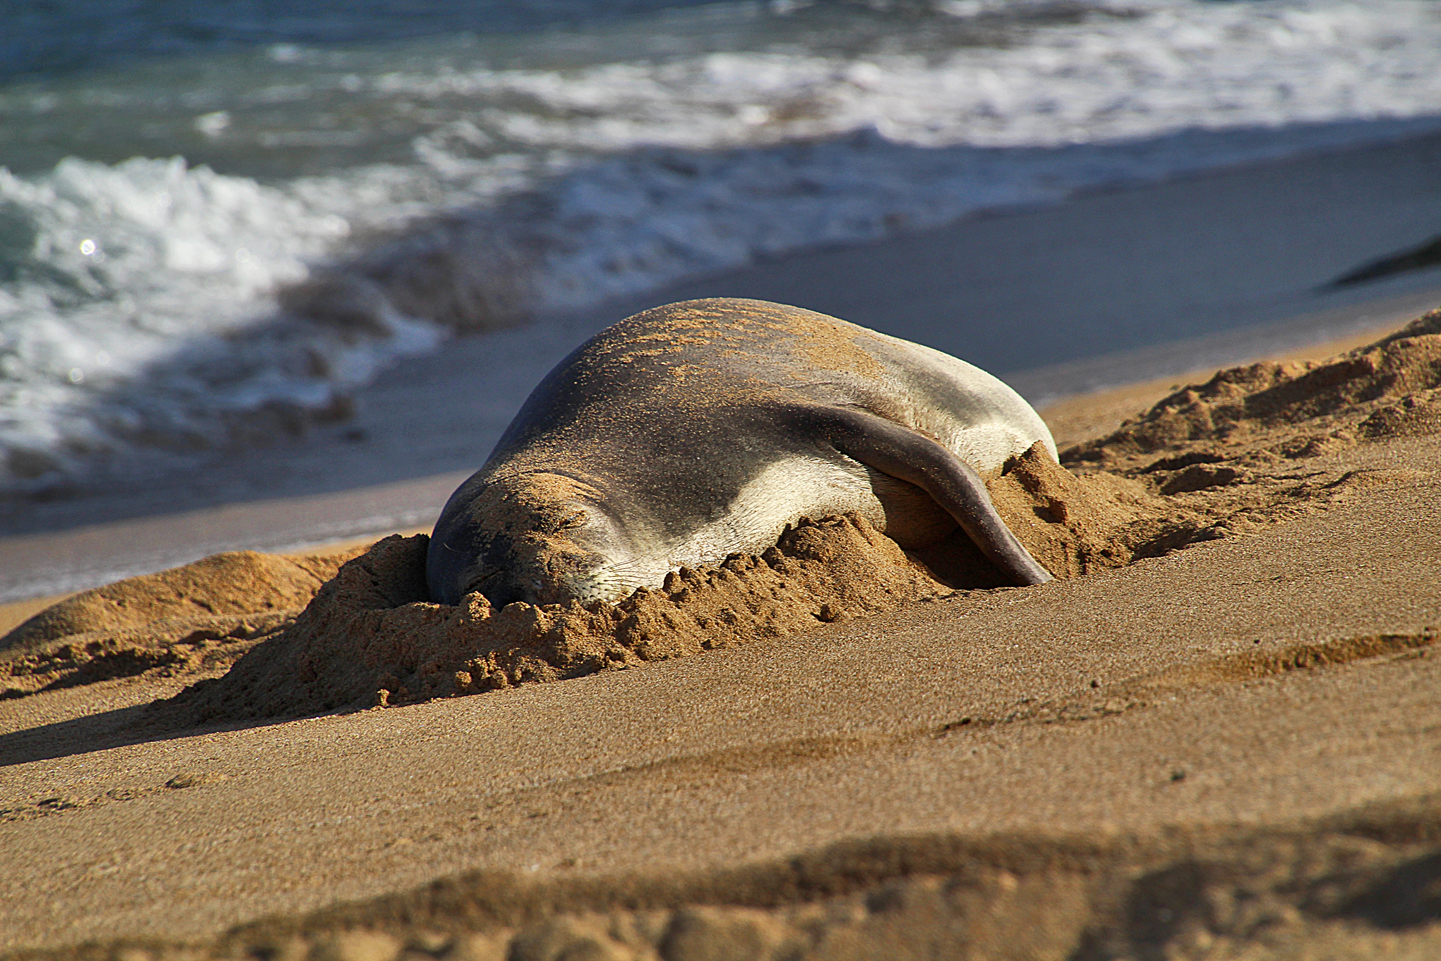 Hawaiian Monk Seal on the beach in Hau'ula. This one is Ipo.